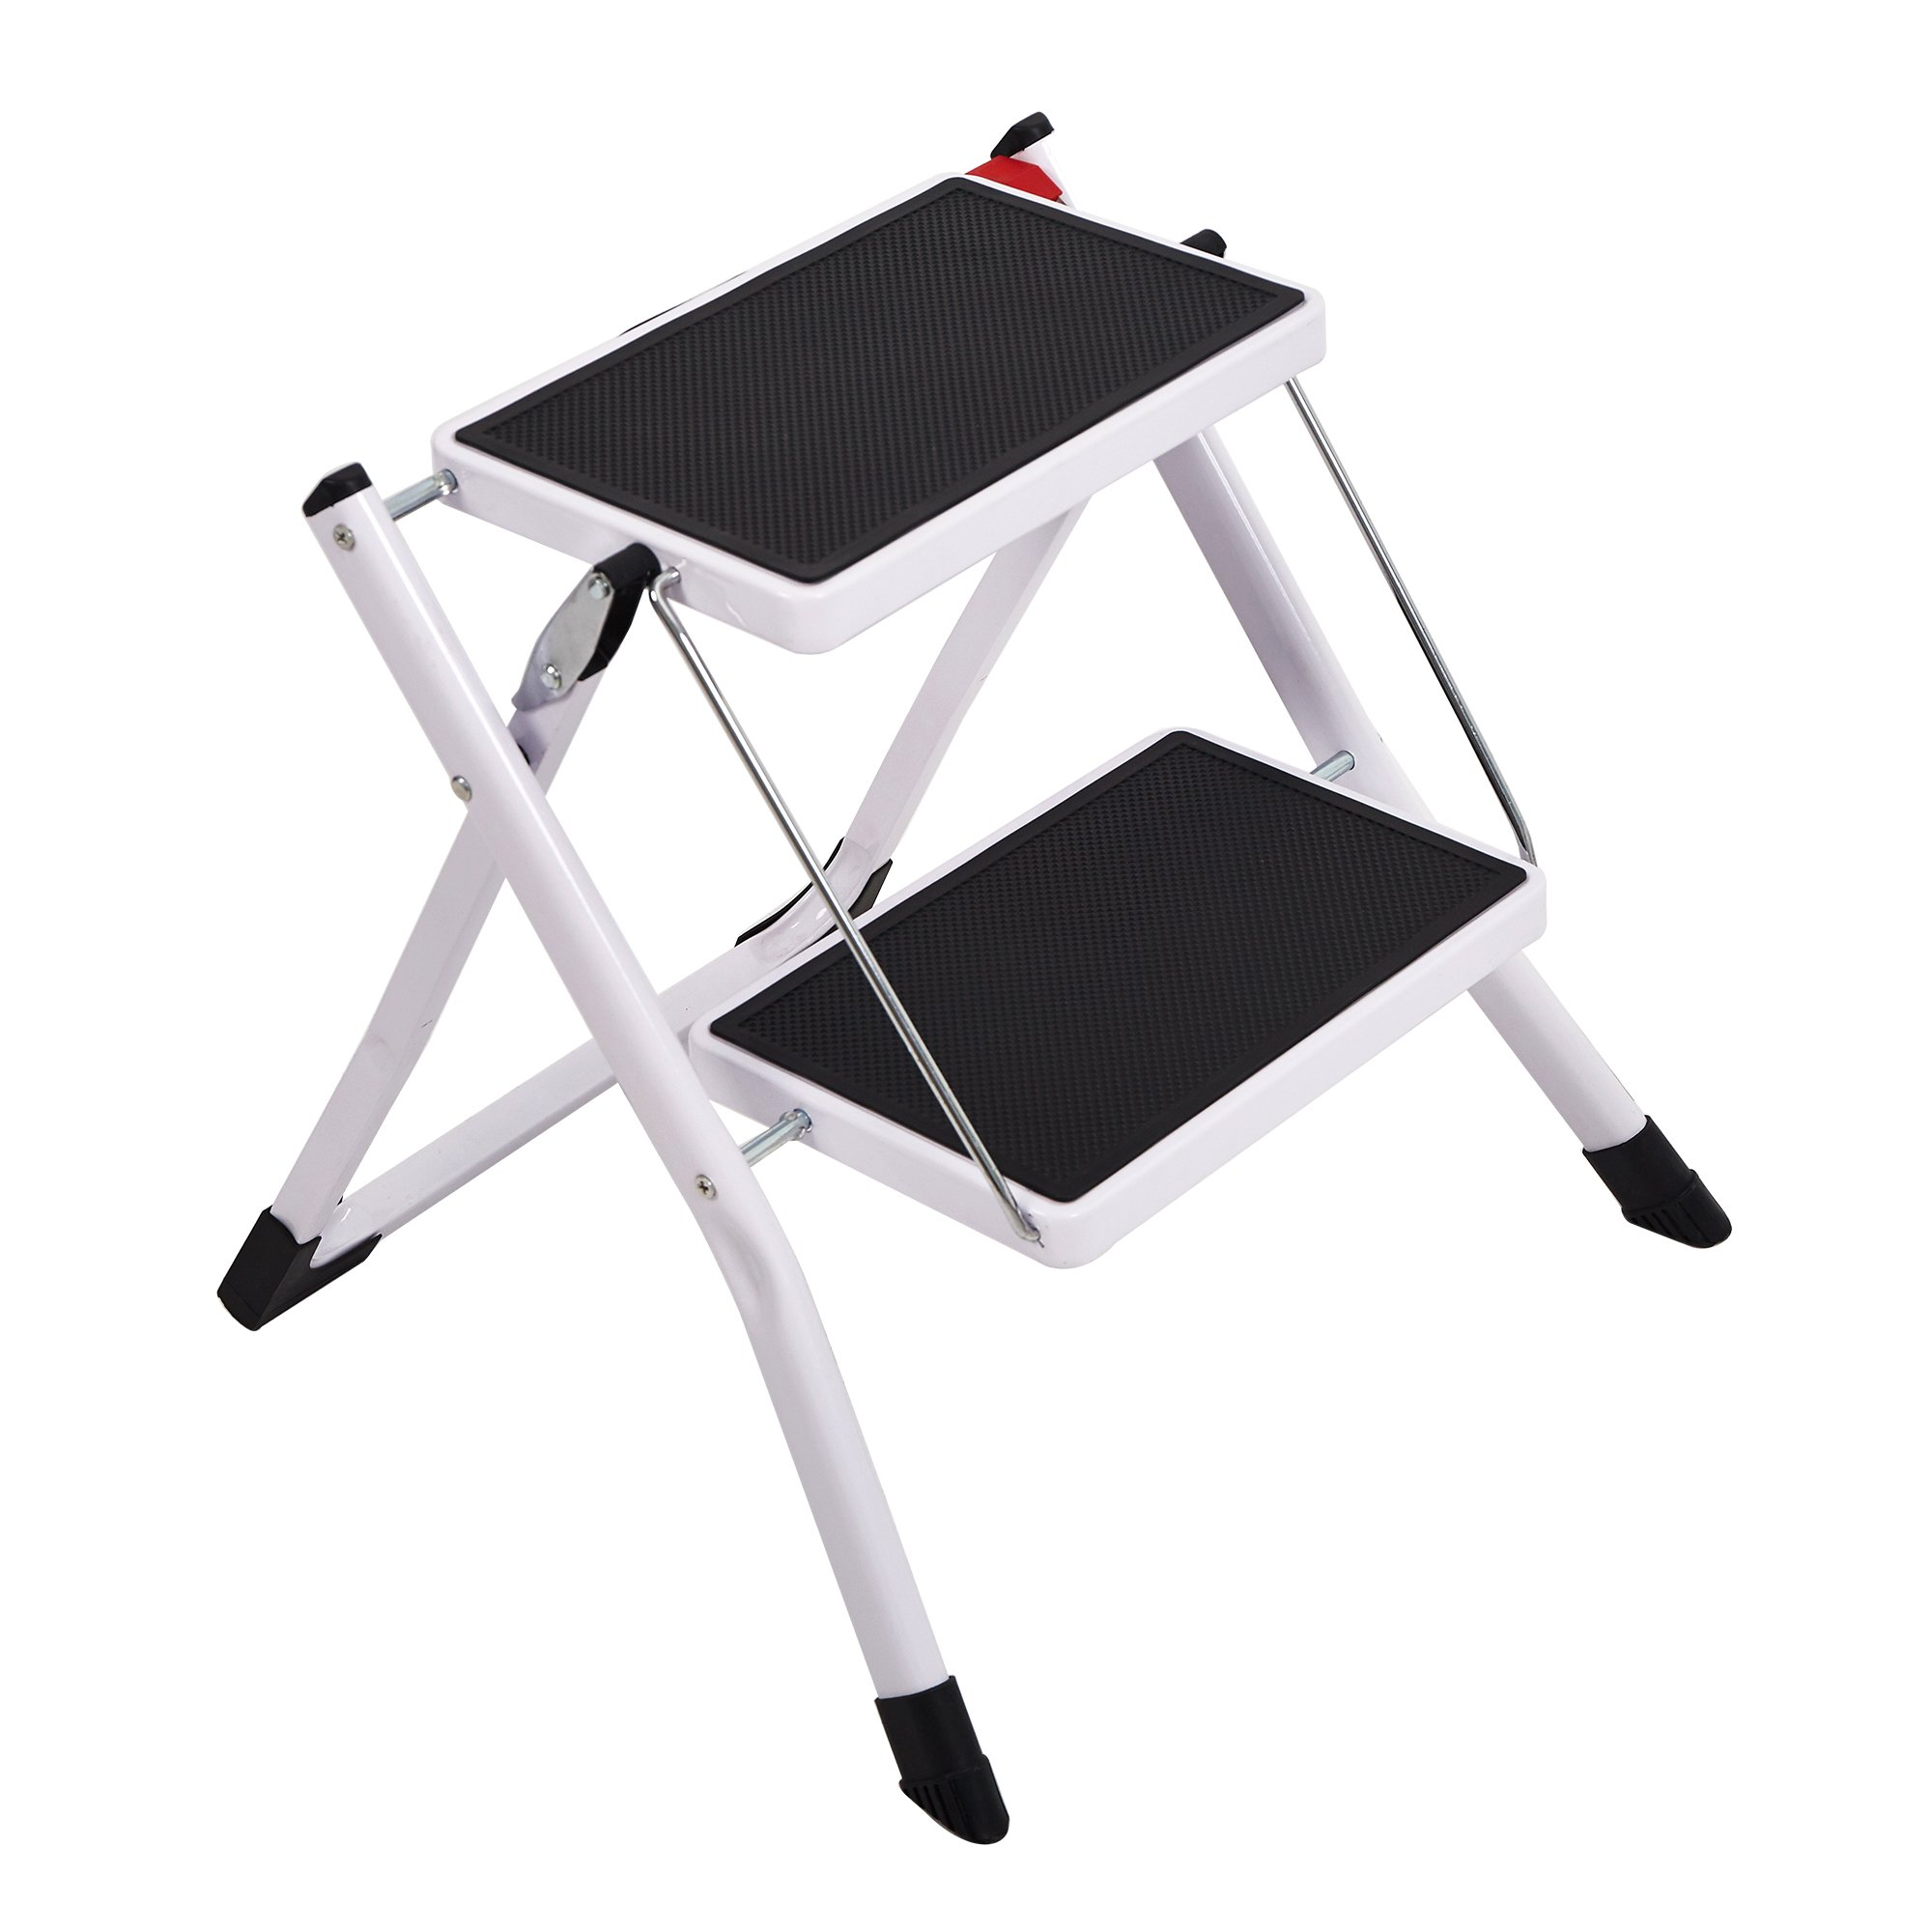 Lucky Tree Anti-Slip Folding Step Stools Wide Platform Step Ladder 2 Steps for Kitchen Home, 220lbs Capacity